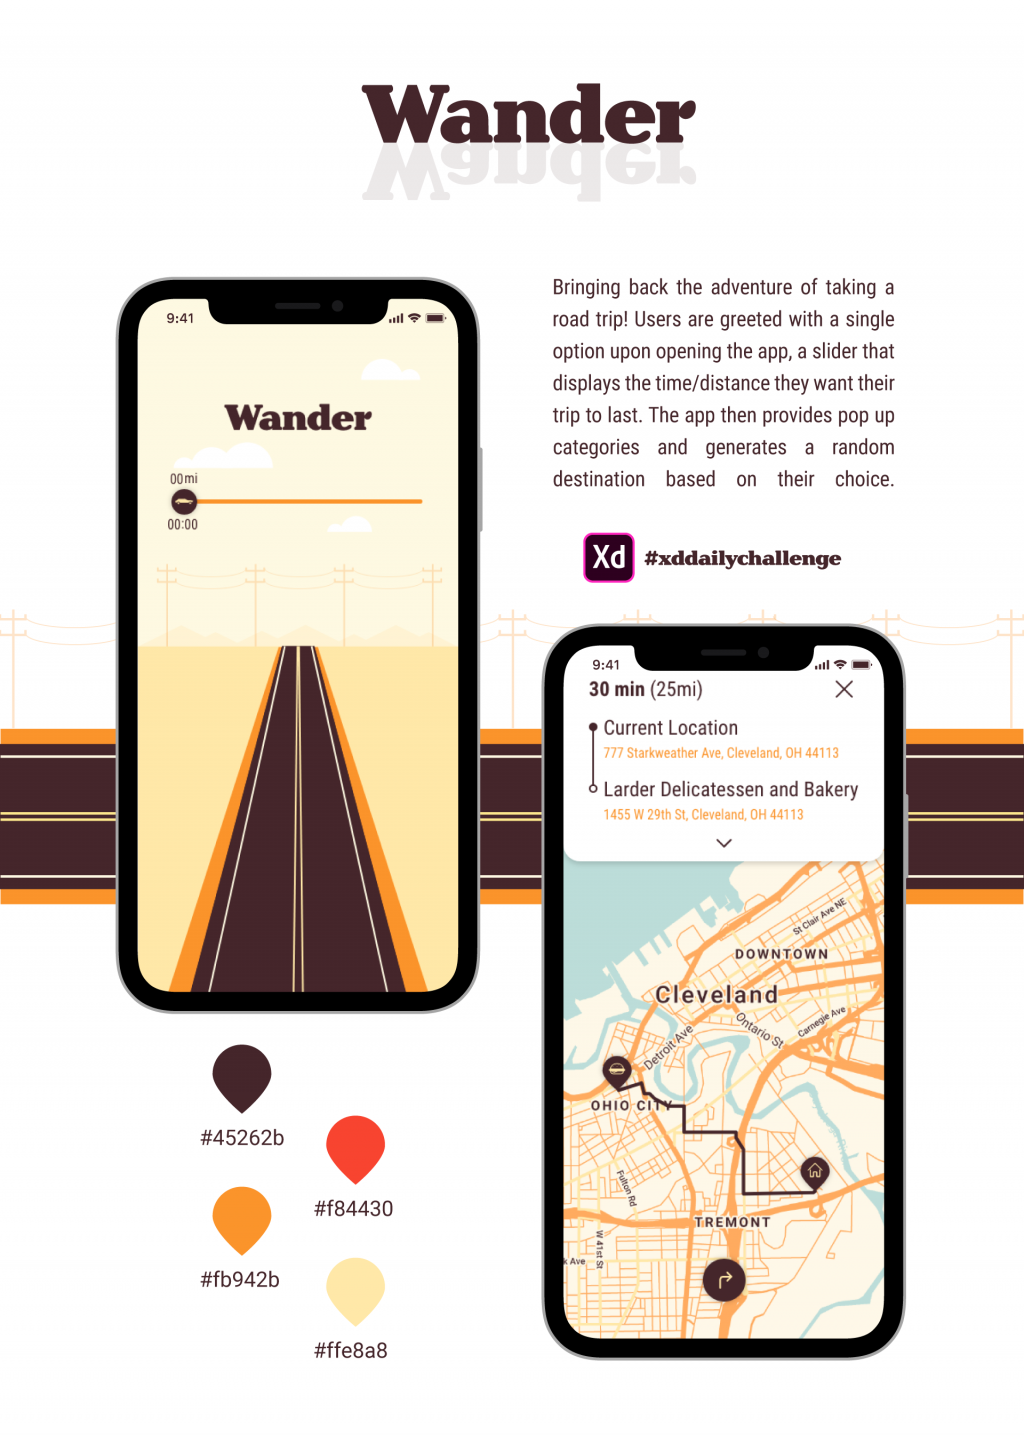 Mockup for a design for a road trip app.